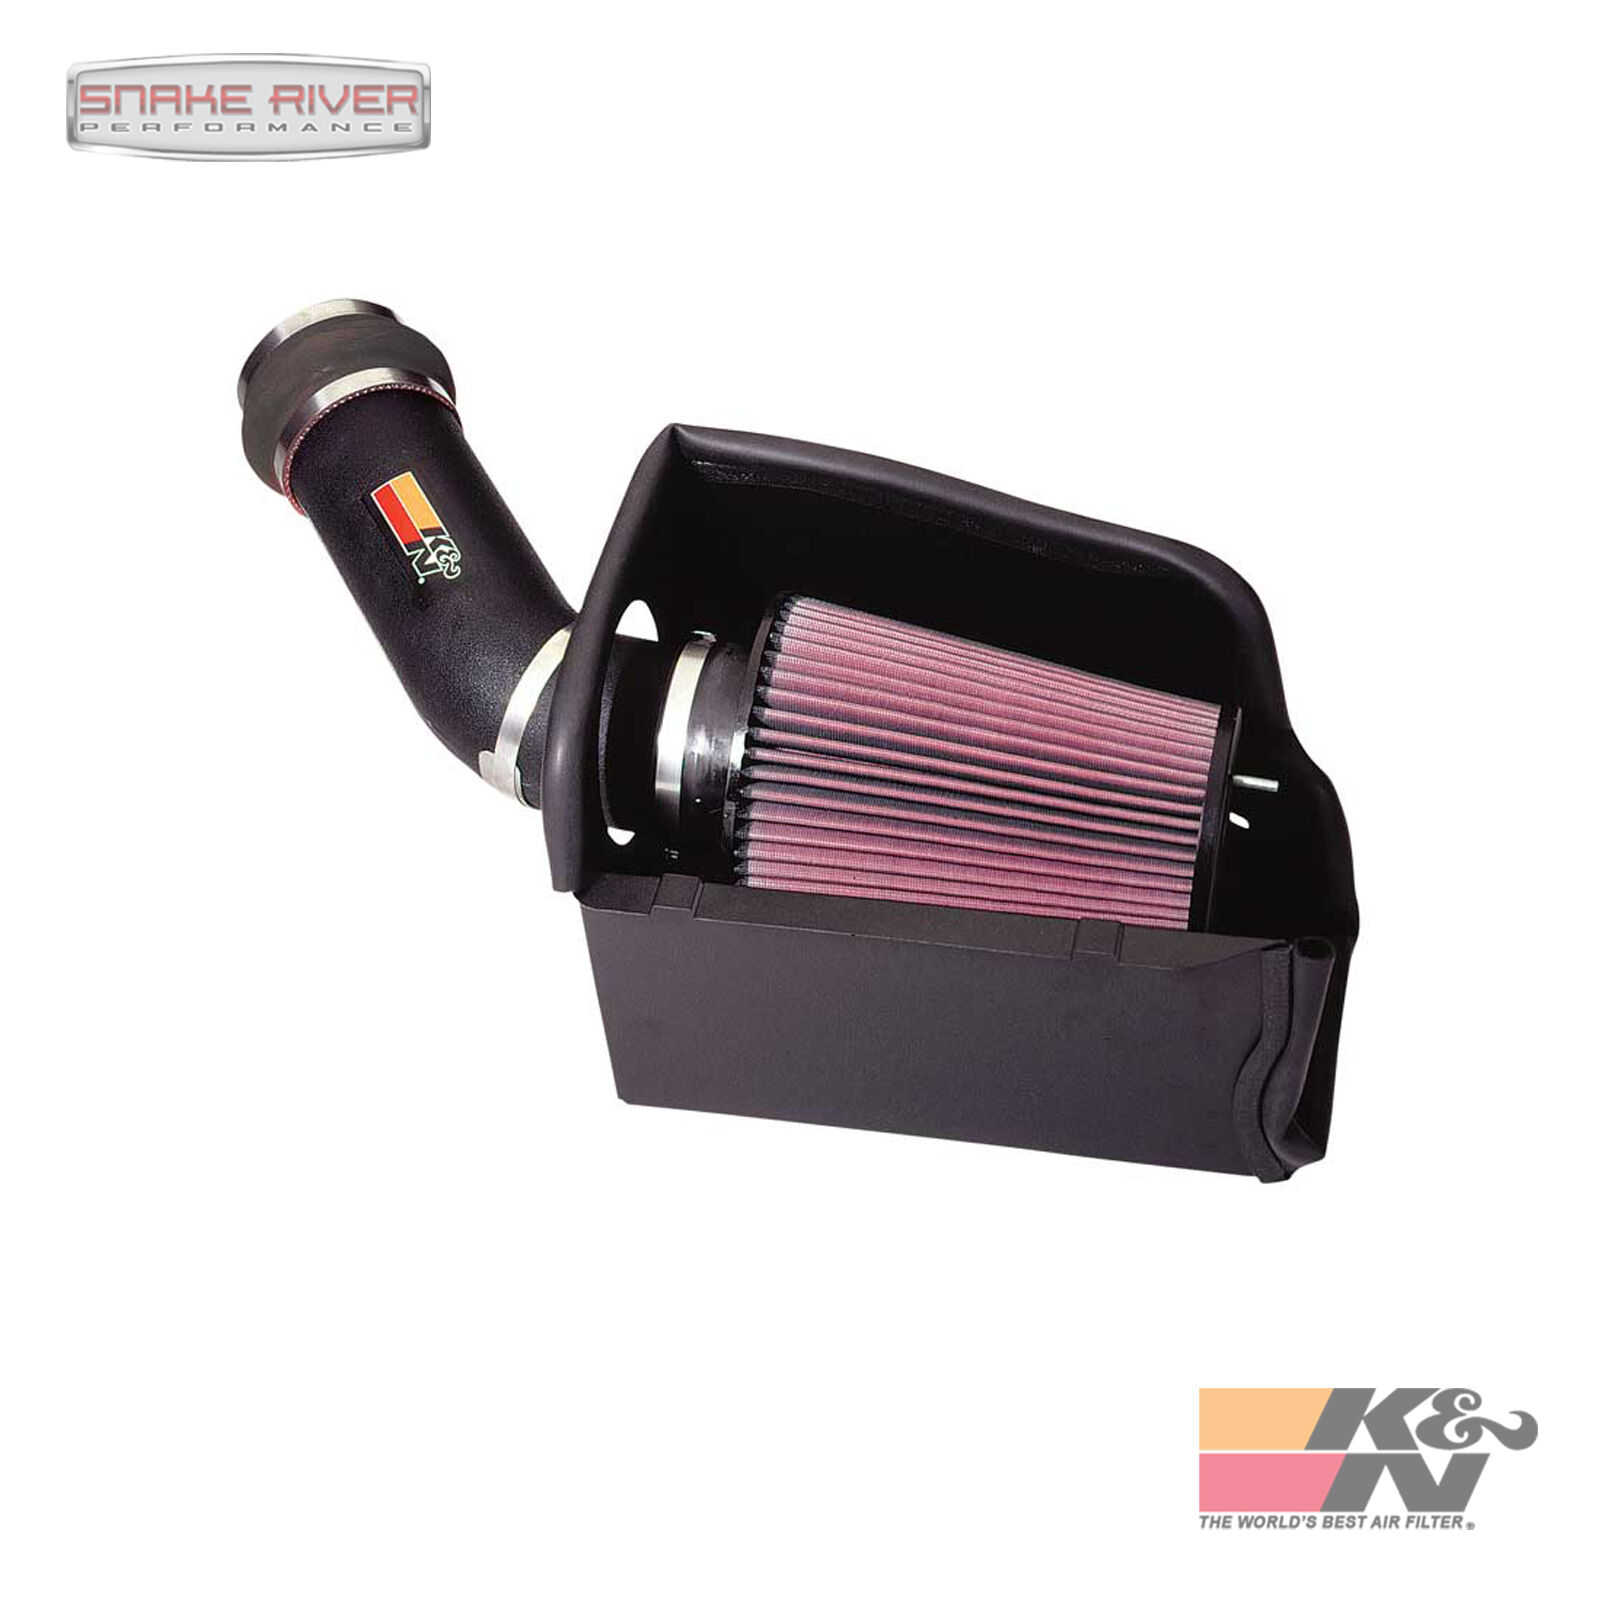 Cold Air Intake System Kit For 1999.5-2003 Ford 7.3L Powerstroke Diesel 7.3